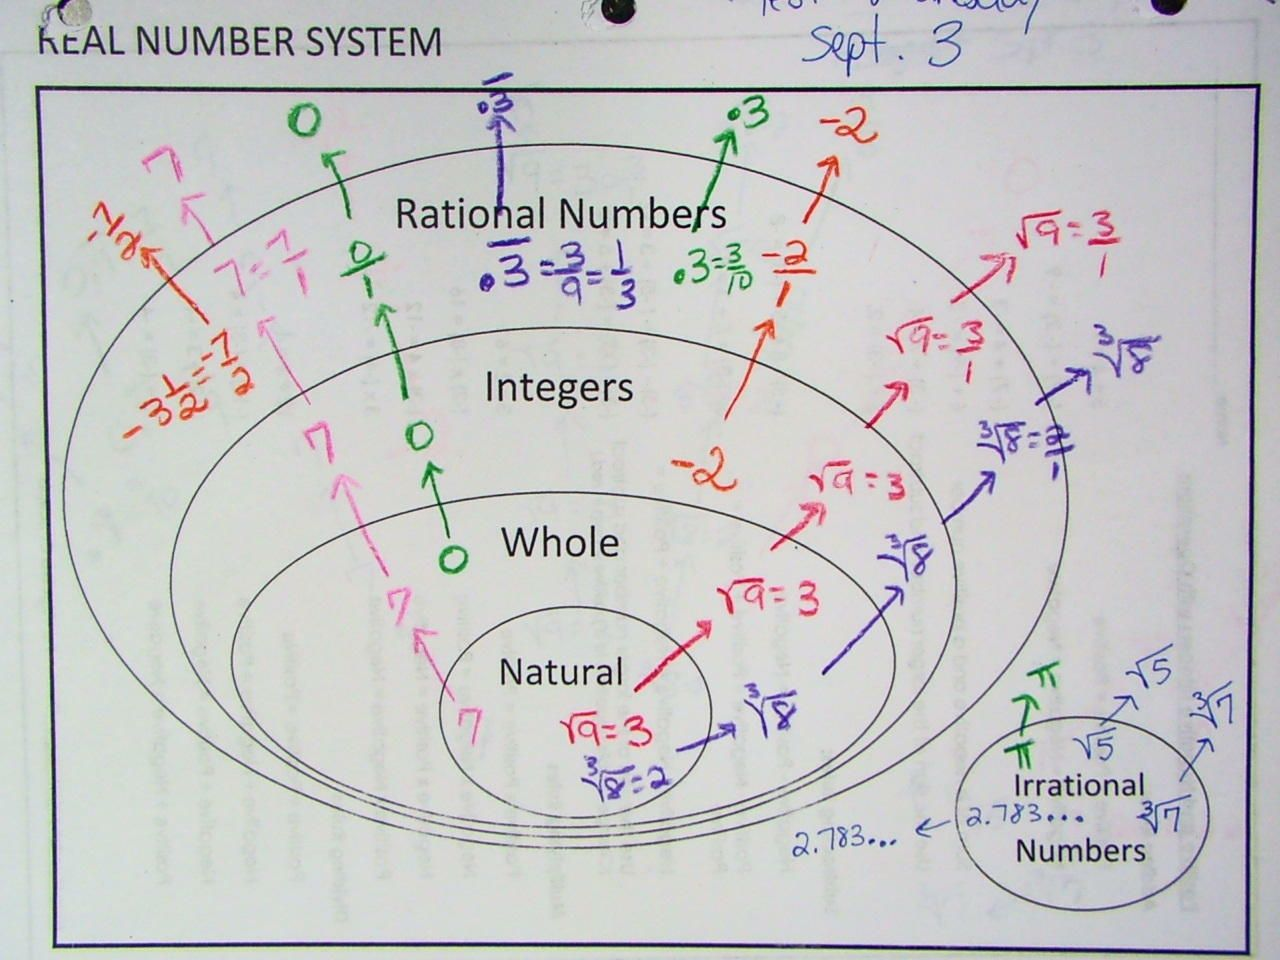 Real number system diagram 2g 1280960 ms vs math 8 real number system diagram 2g 1280960 ccuart Choice Image